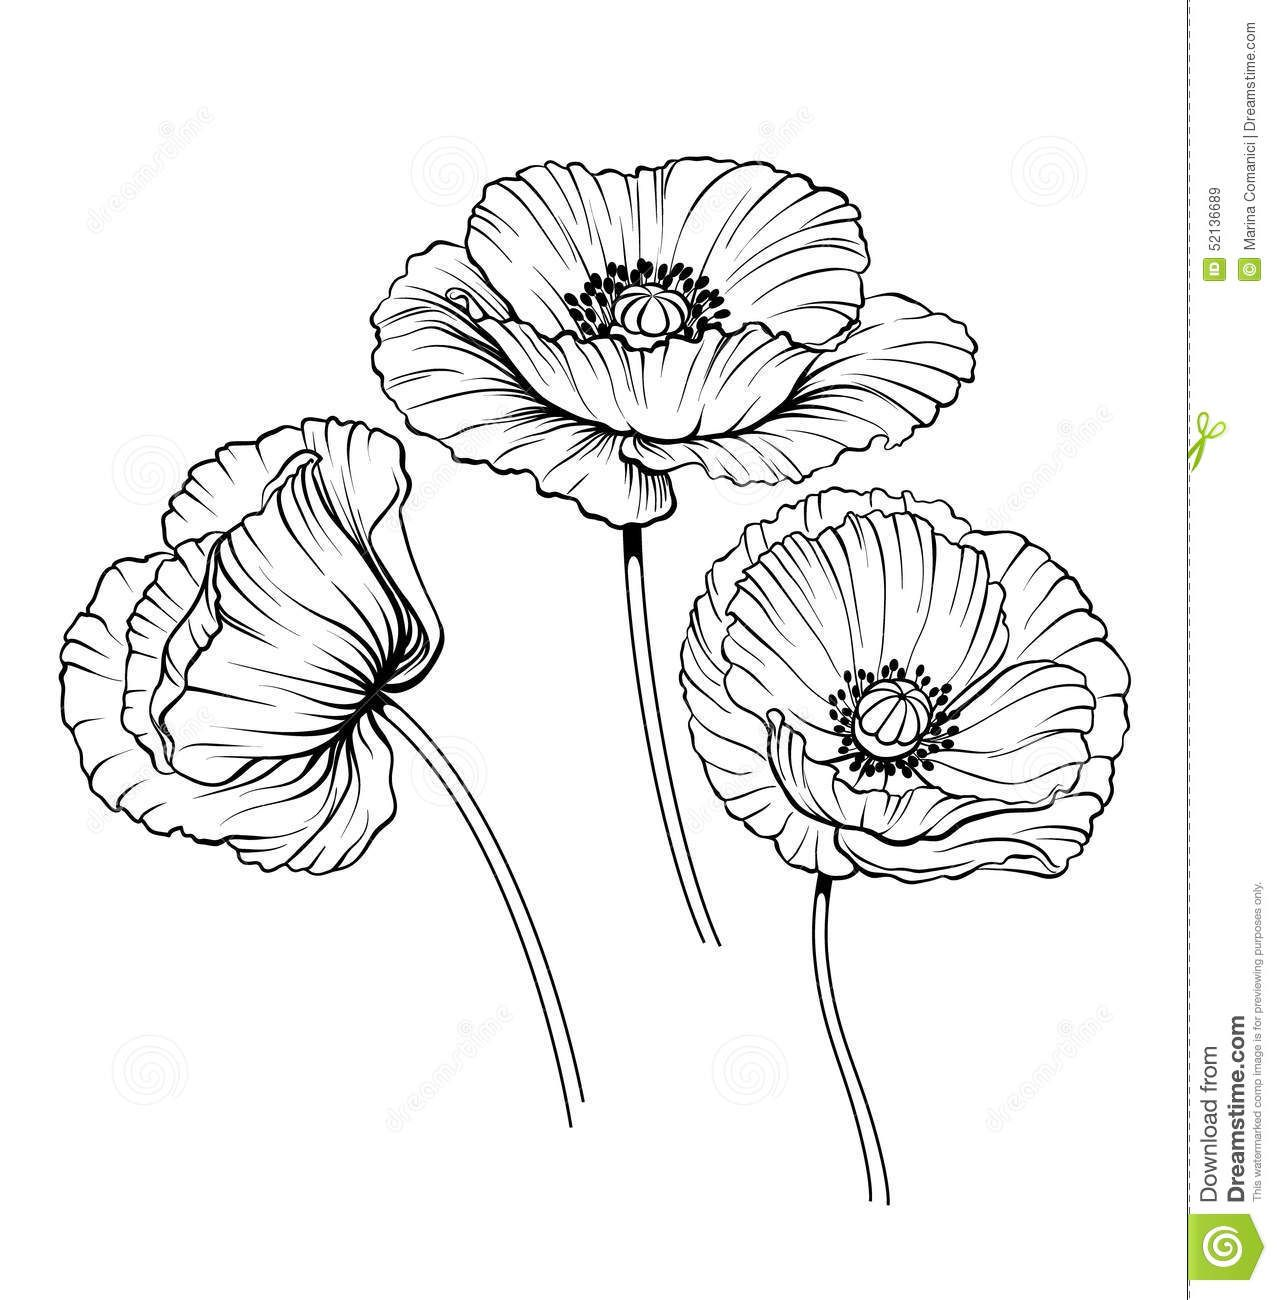 Poppies Drawing